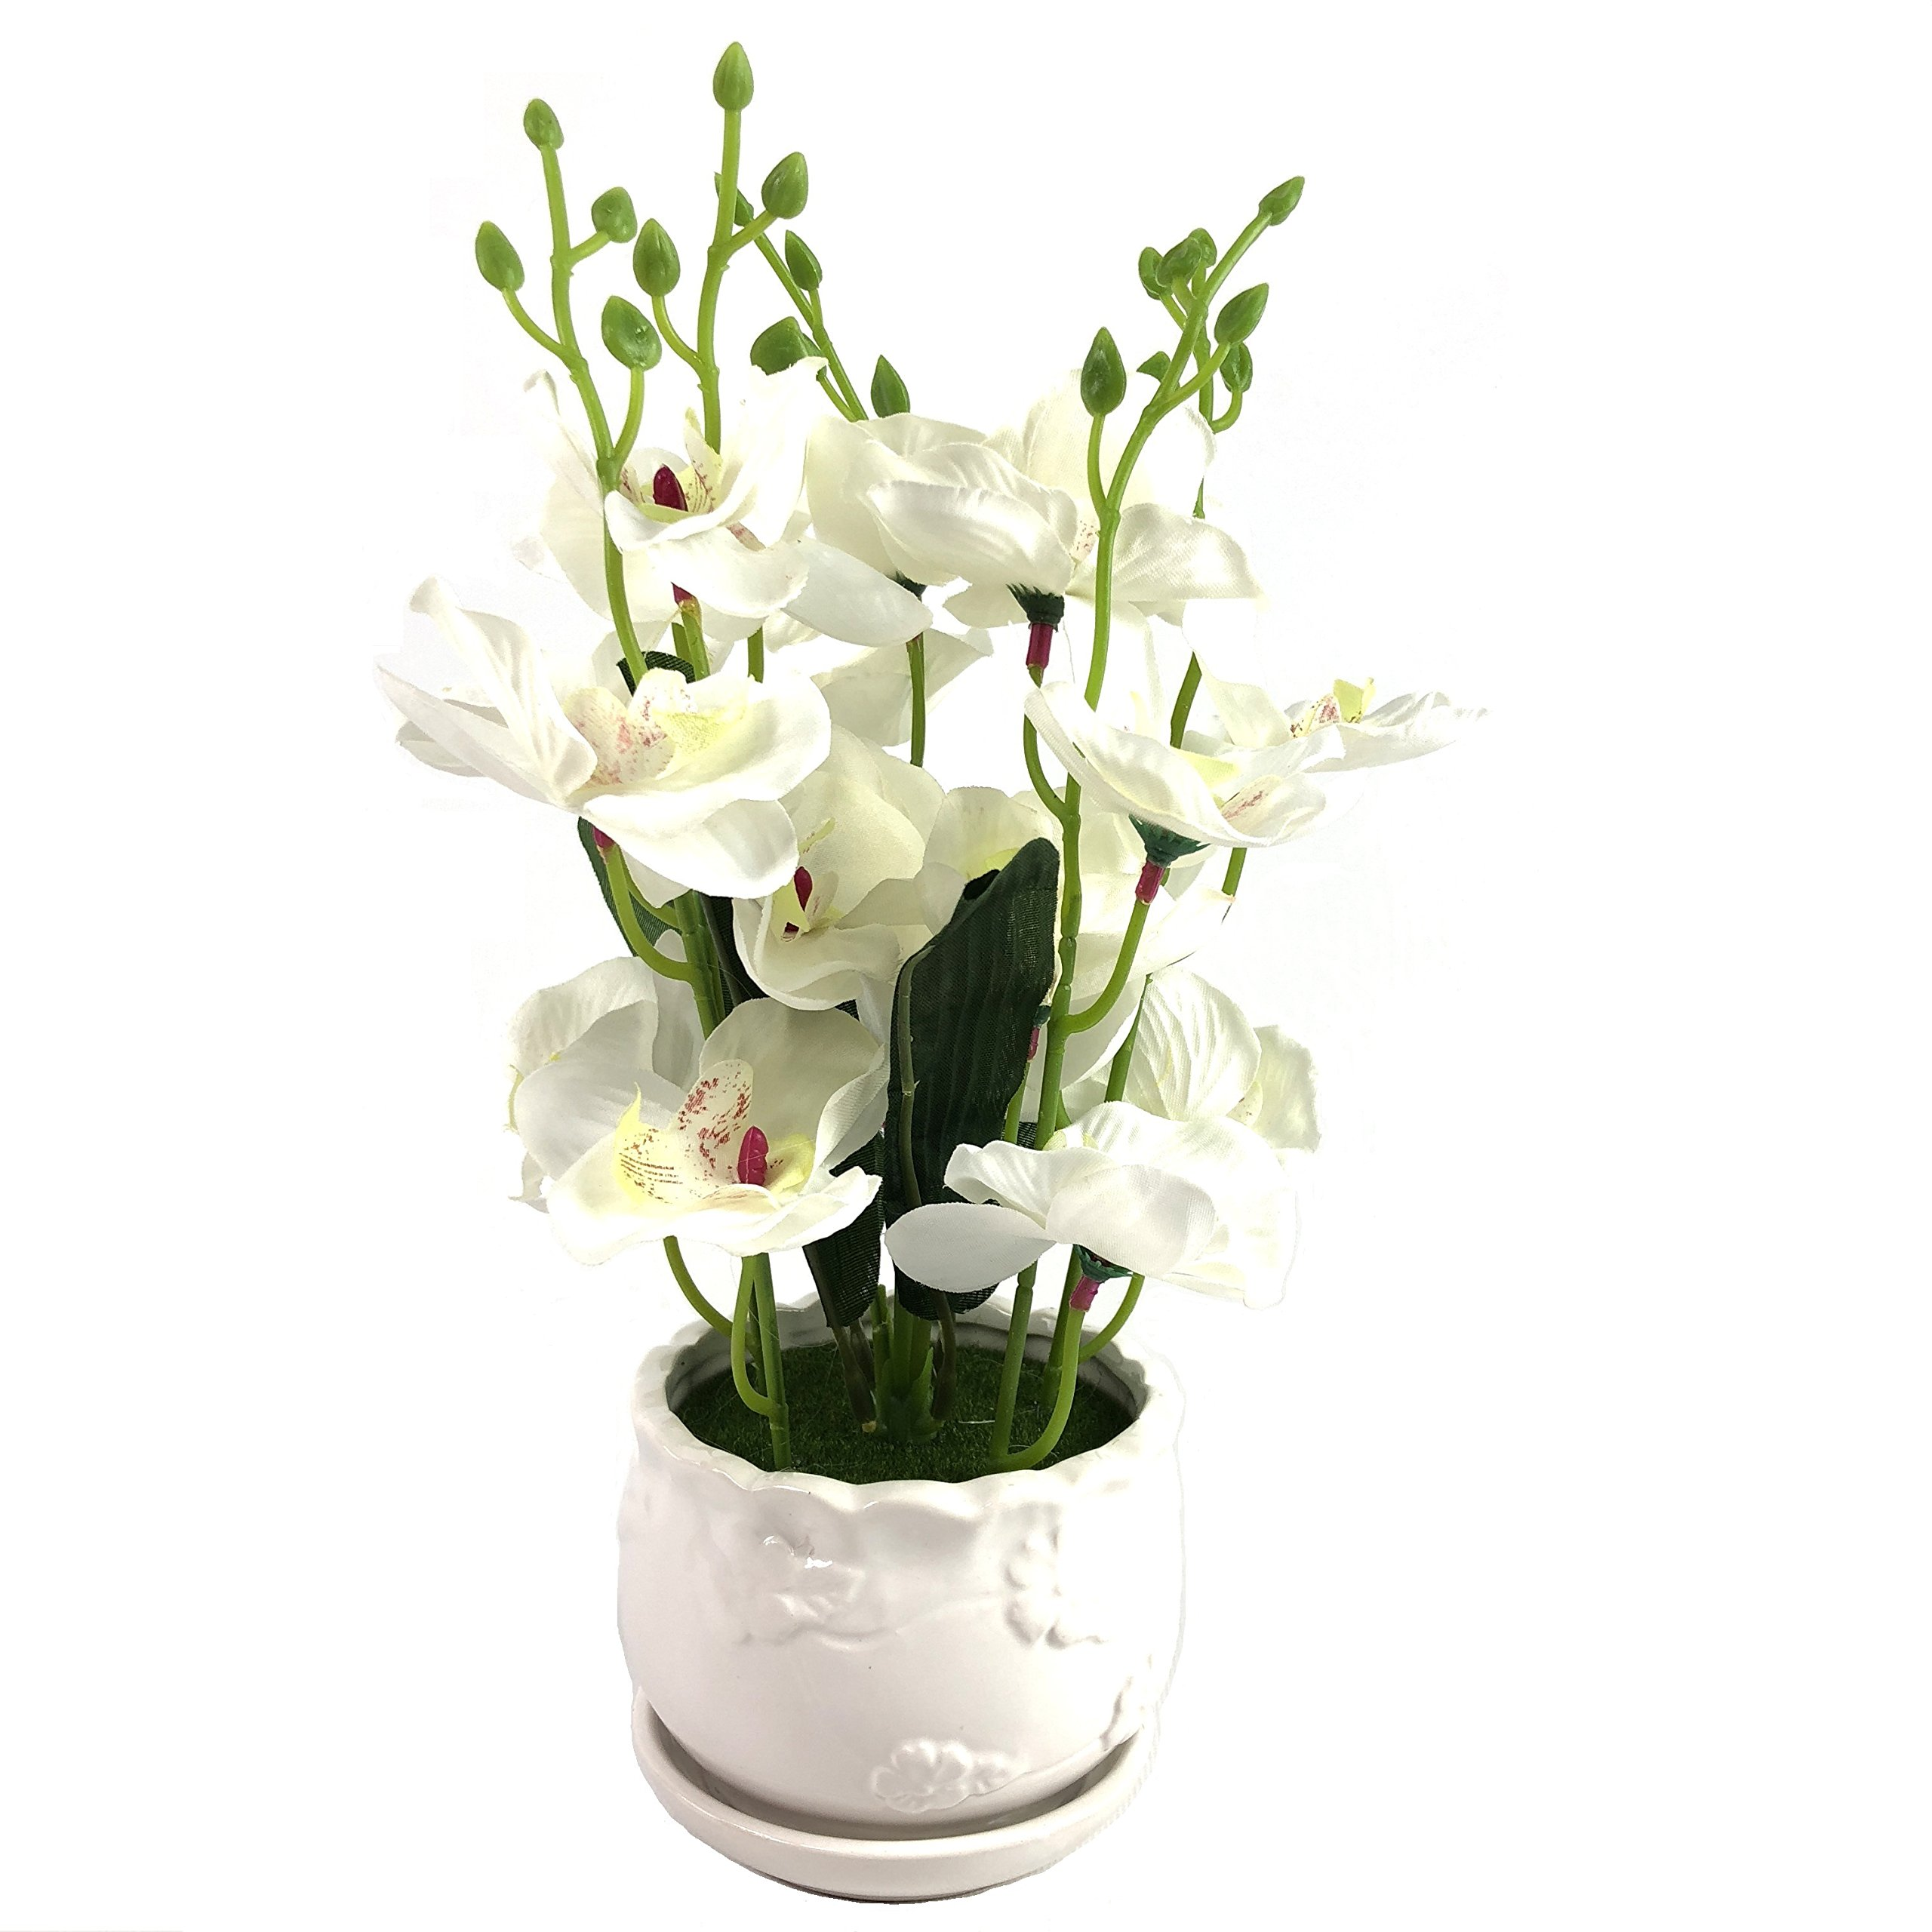 PEPPERLONELY Brand 13'' H Artificial Ceramic Potted Plant Orchid, White